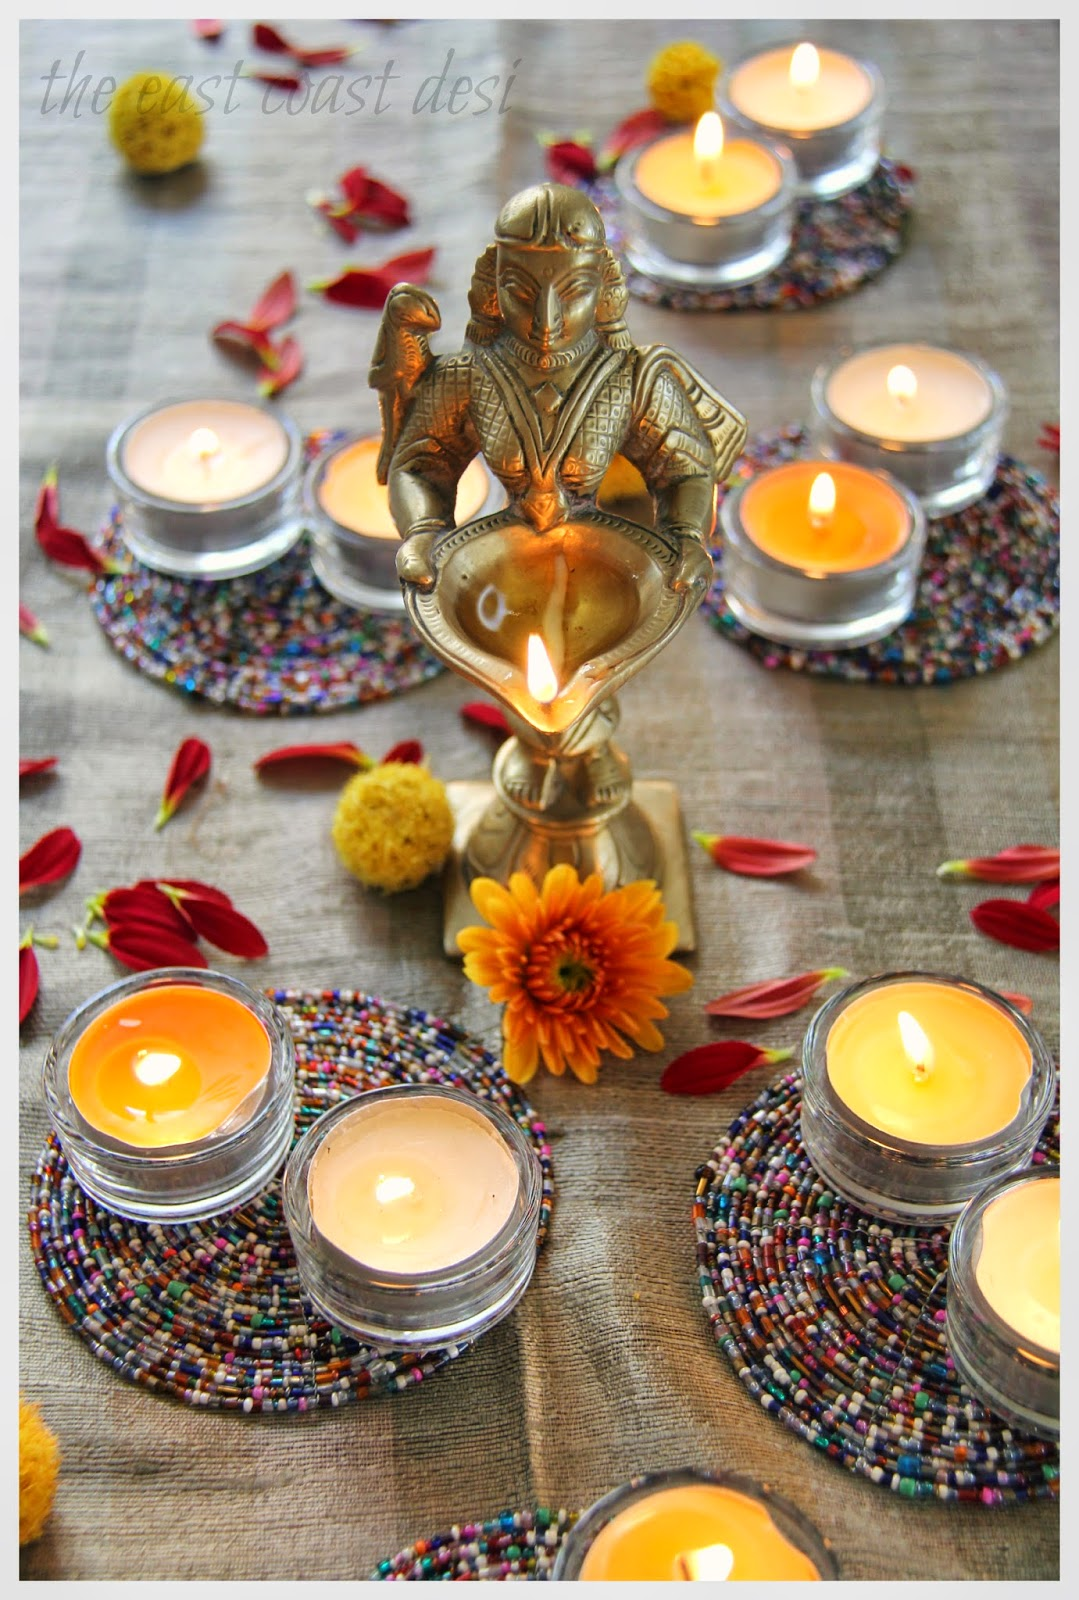 The east coast desi diwali tablescape inspiration day 2 for Diwali decoration material